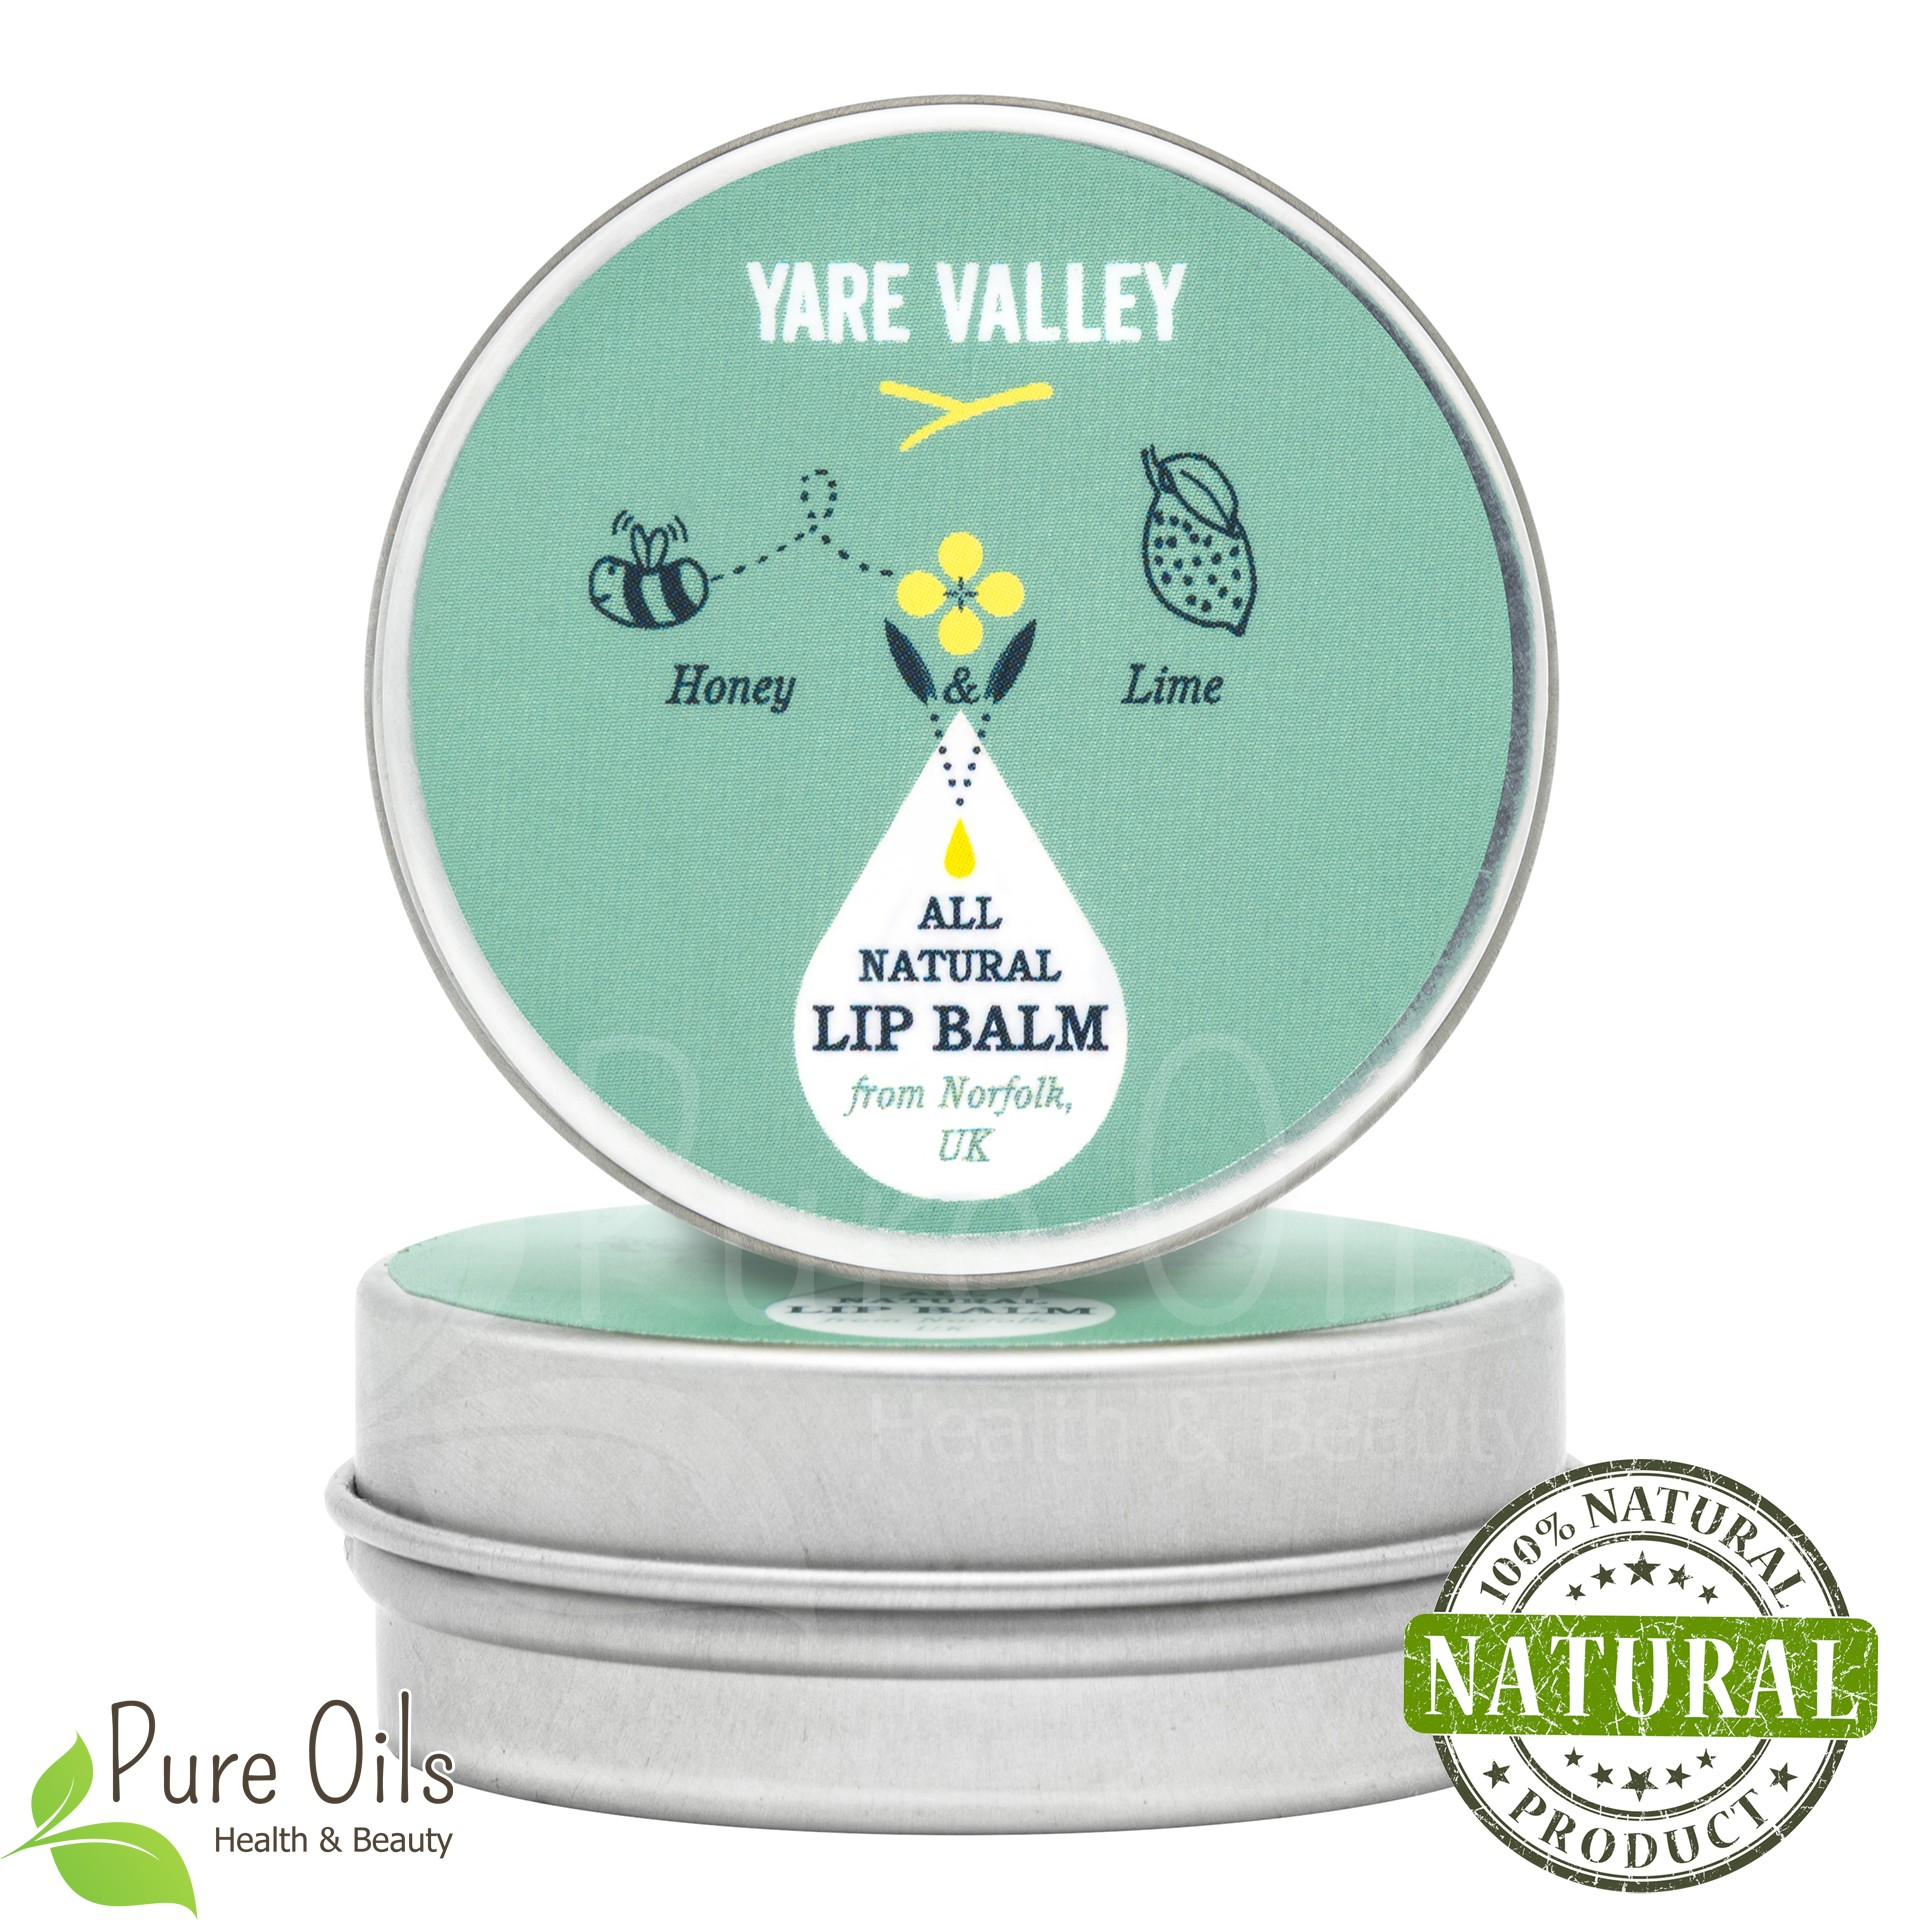 Honey and Lime Natural Lip Balm, Yare Valley